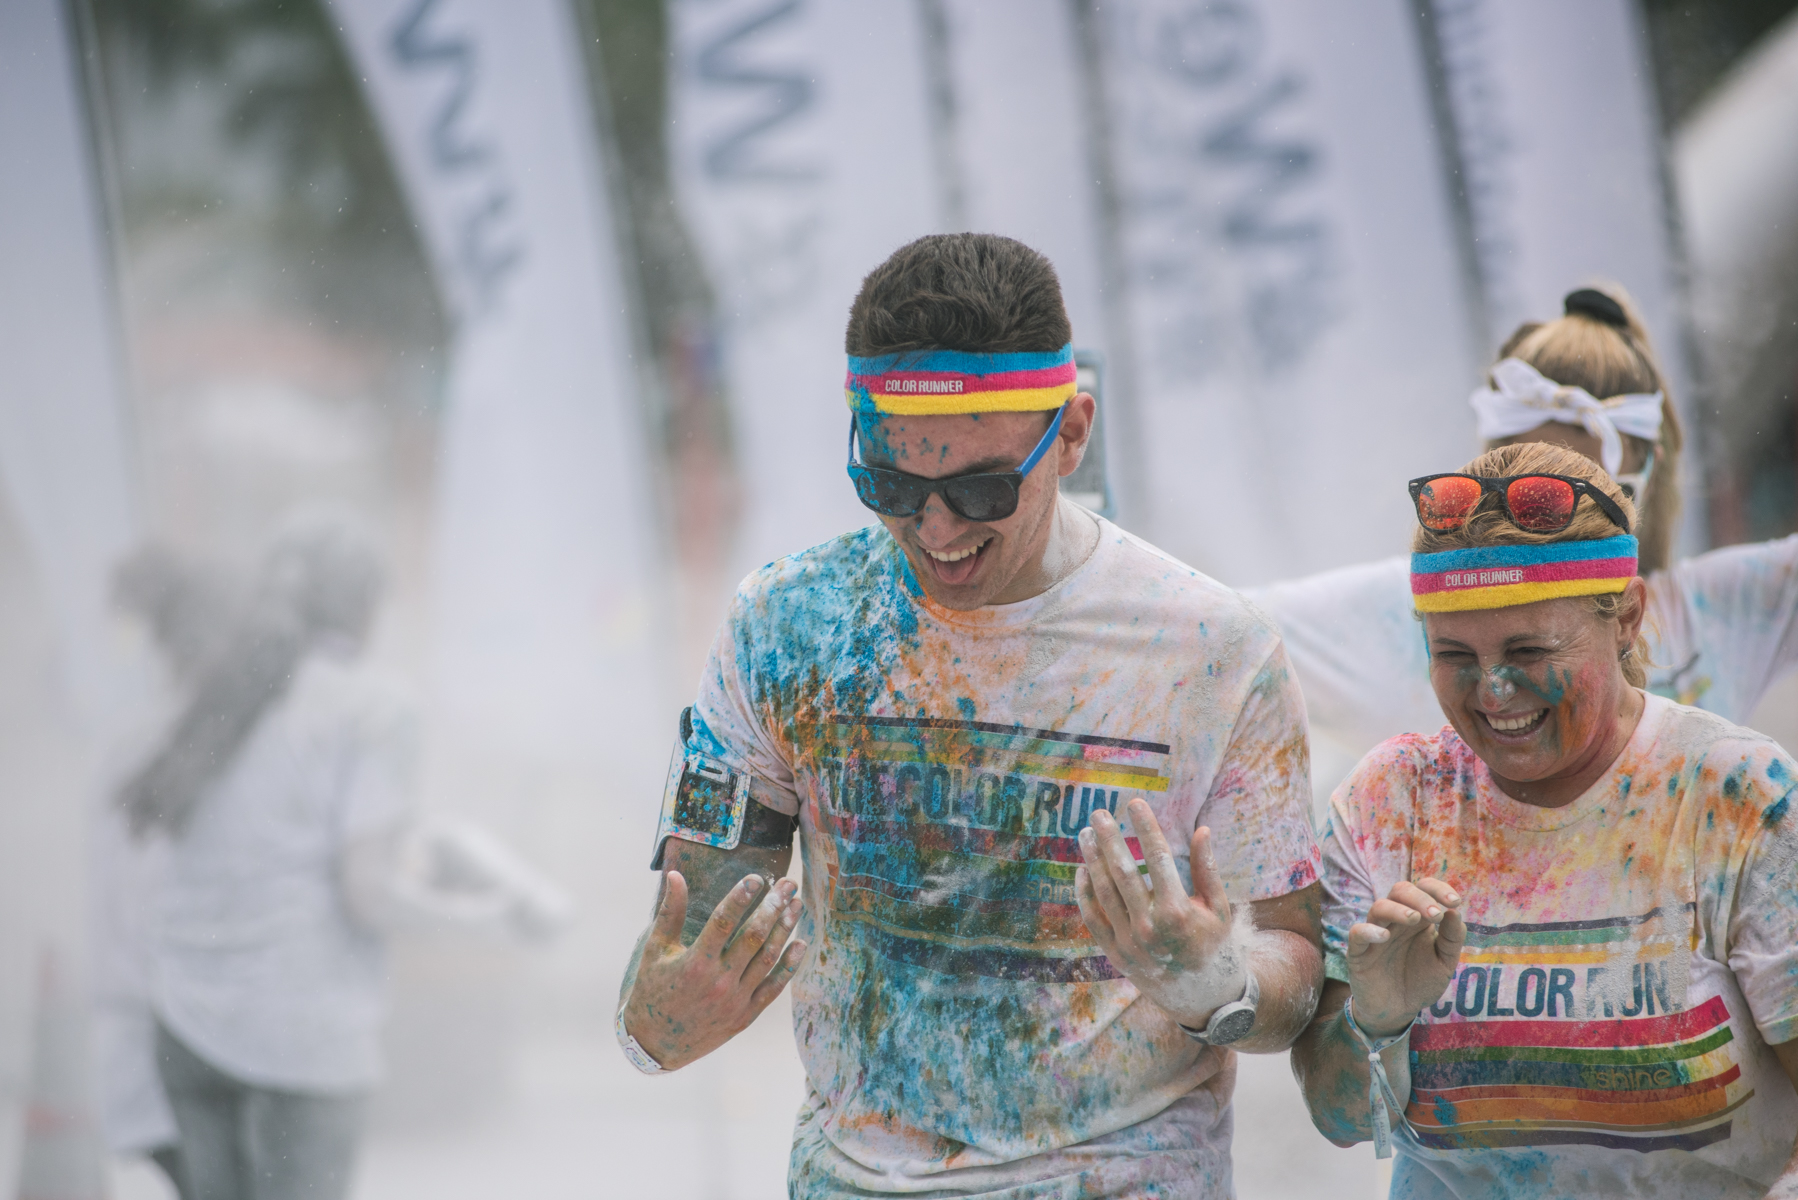 Color_Run-90.jpg